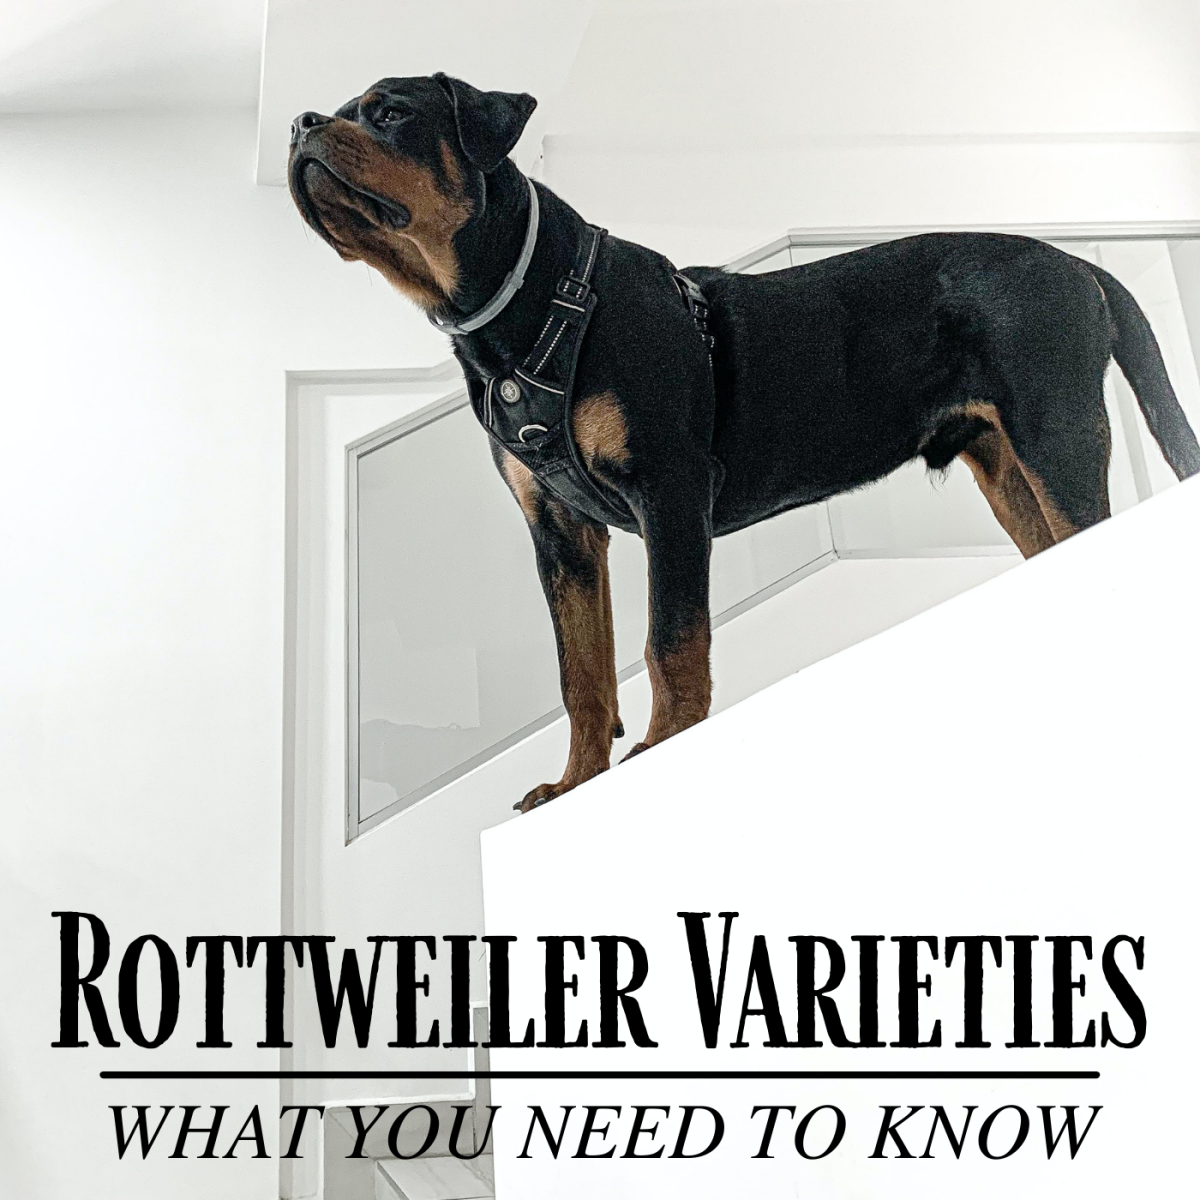 Are the American, German, and Roman Rottweiler varieties a real thing?